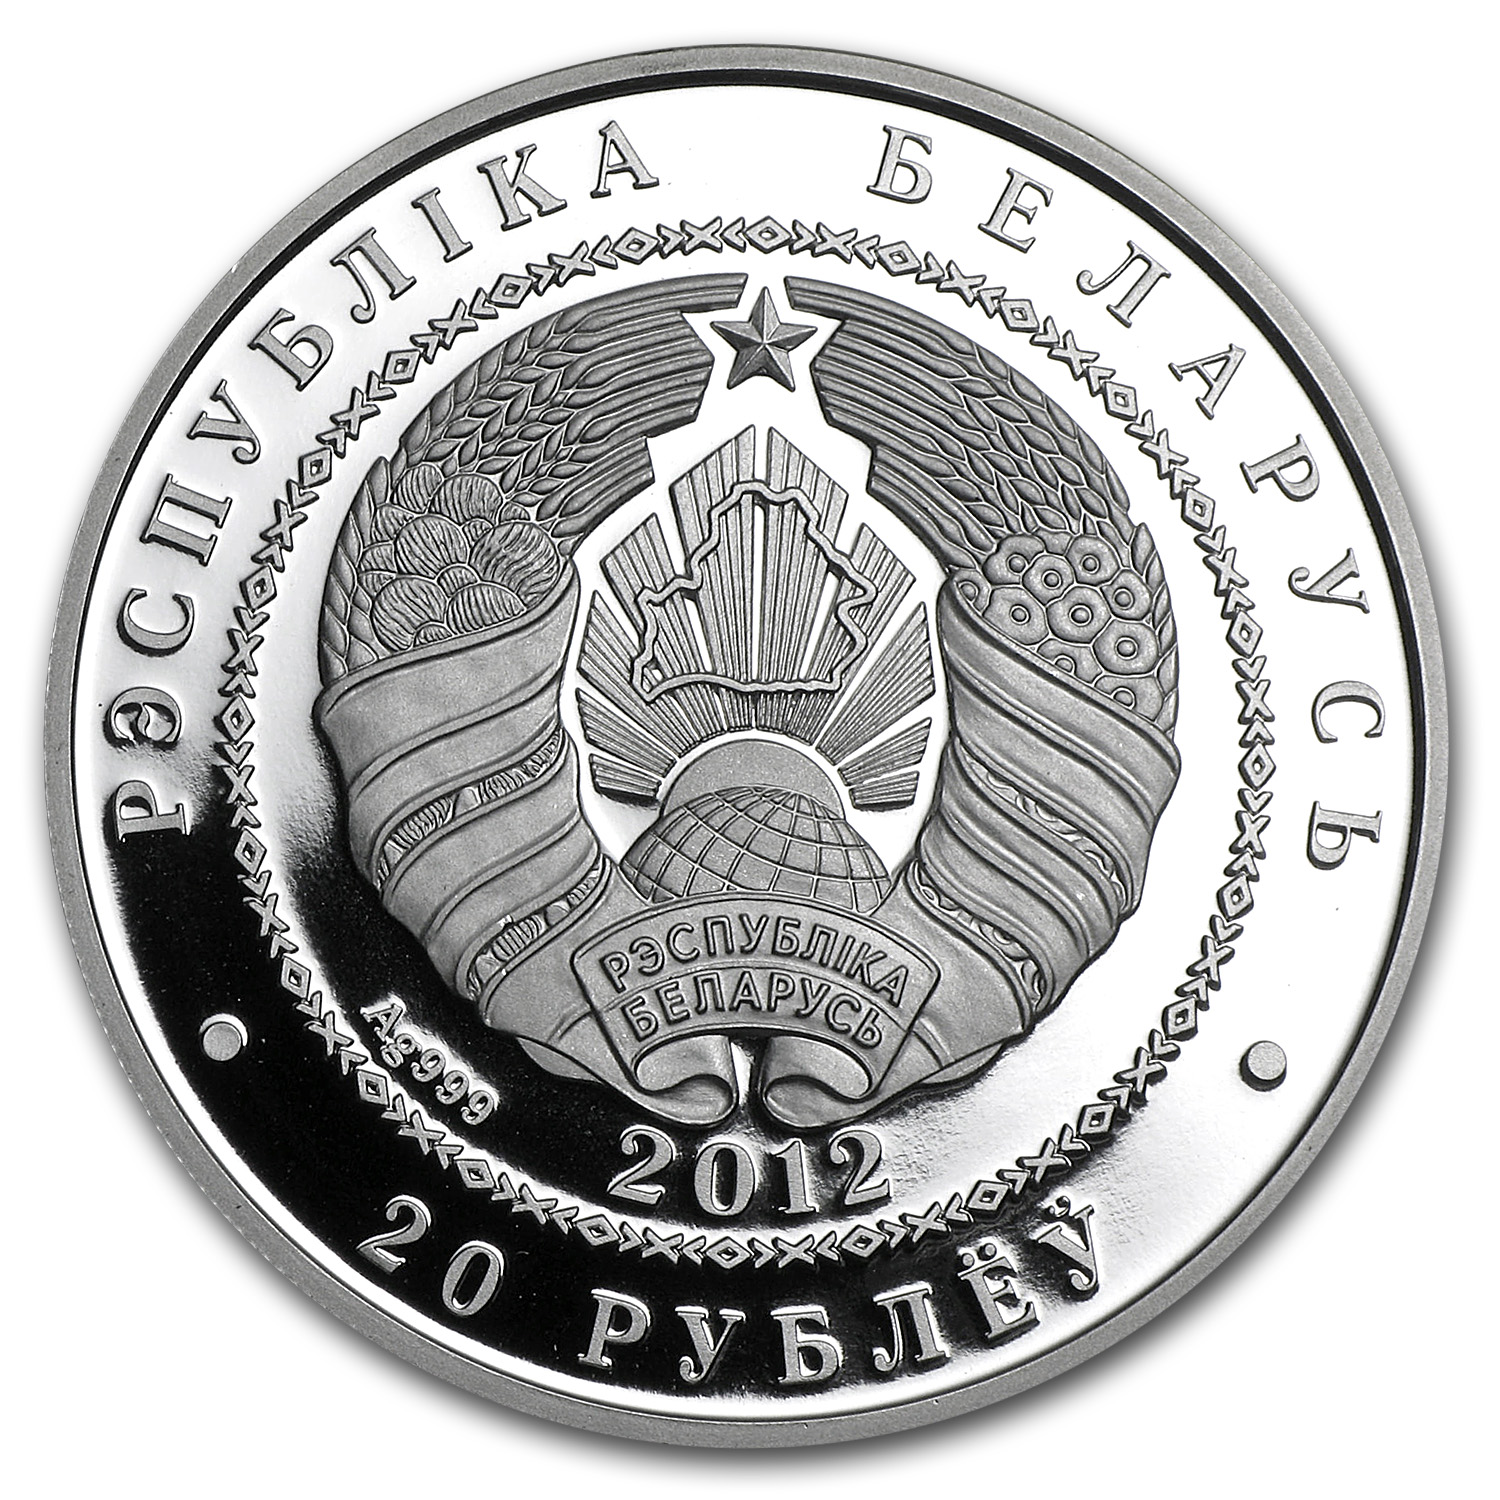 2012 Belarus 1 oz Silver Proof 20 Rubles Bison